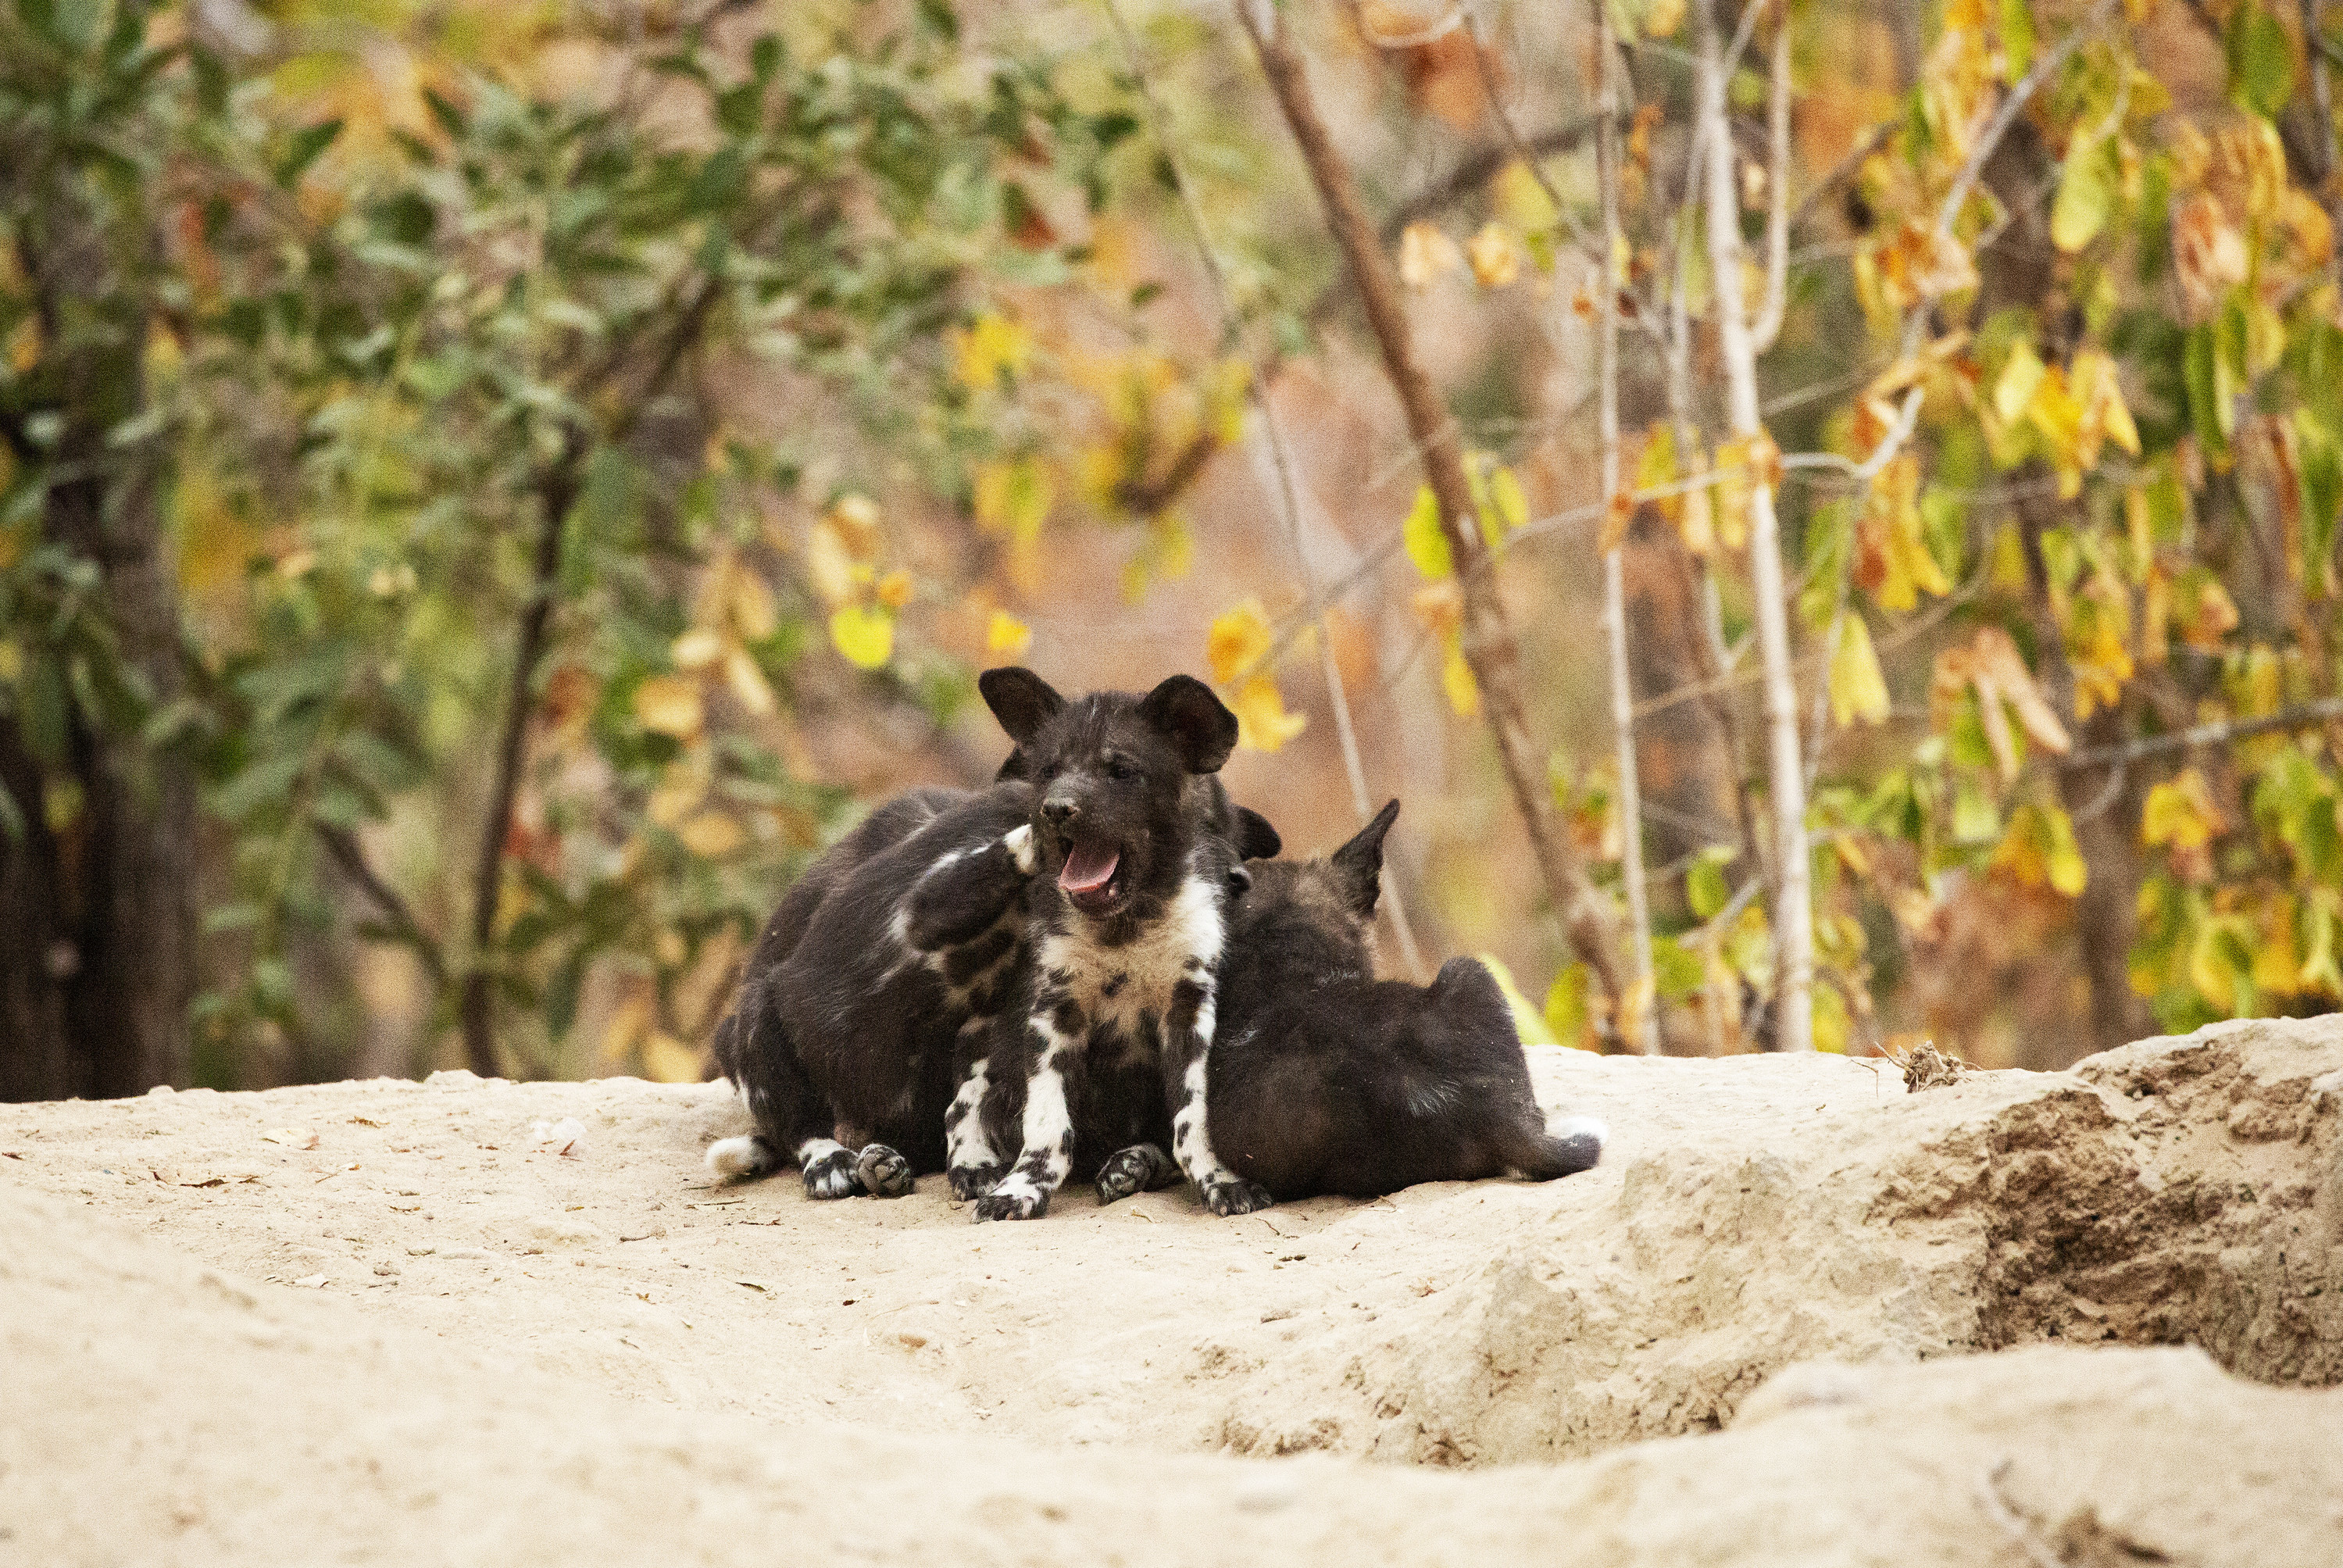 The puppies huddle together with Kip yawning in front. (National Geographic for Disney+/Kim Wolhuter)